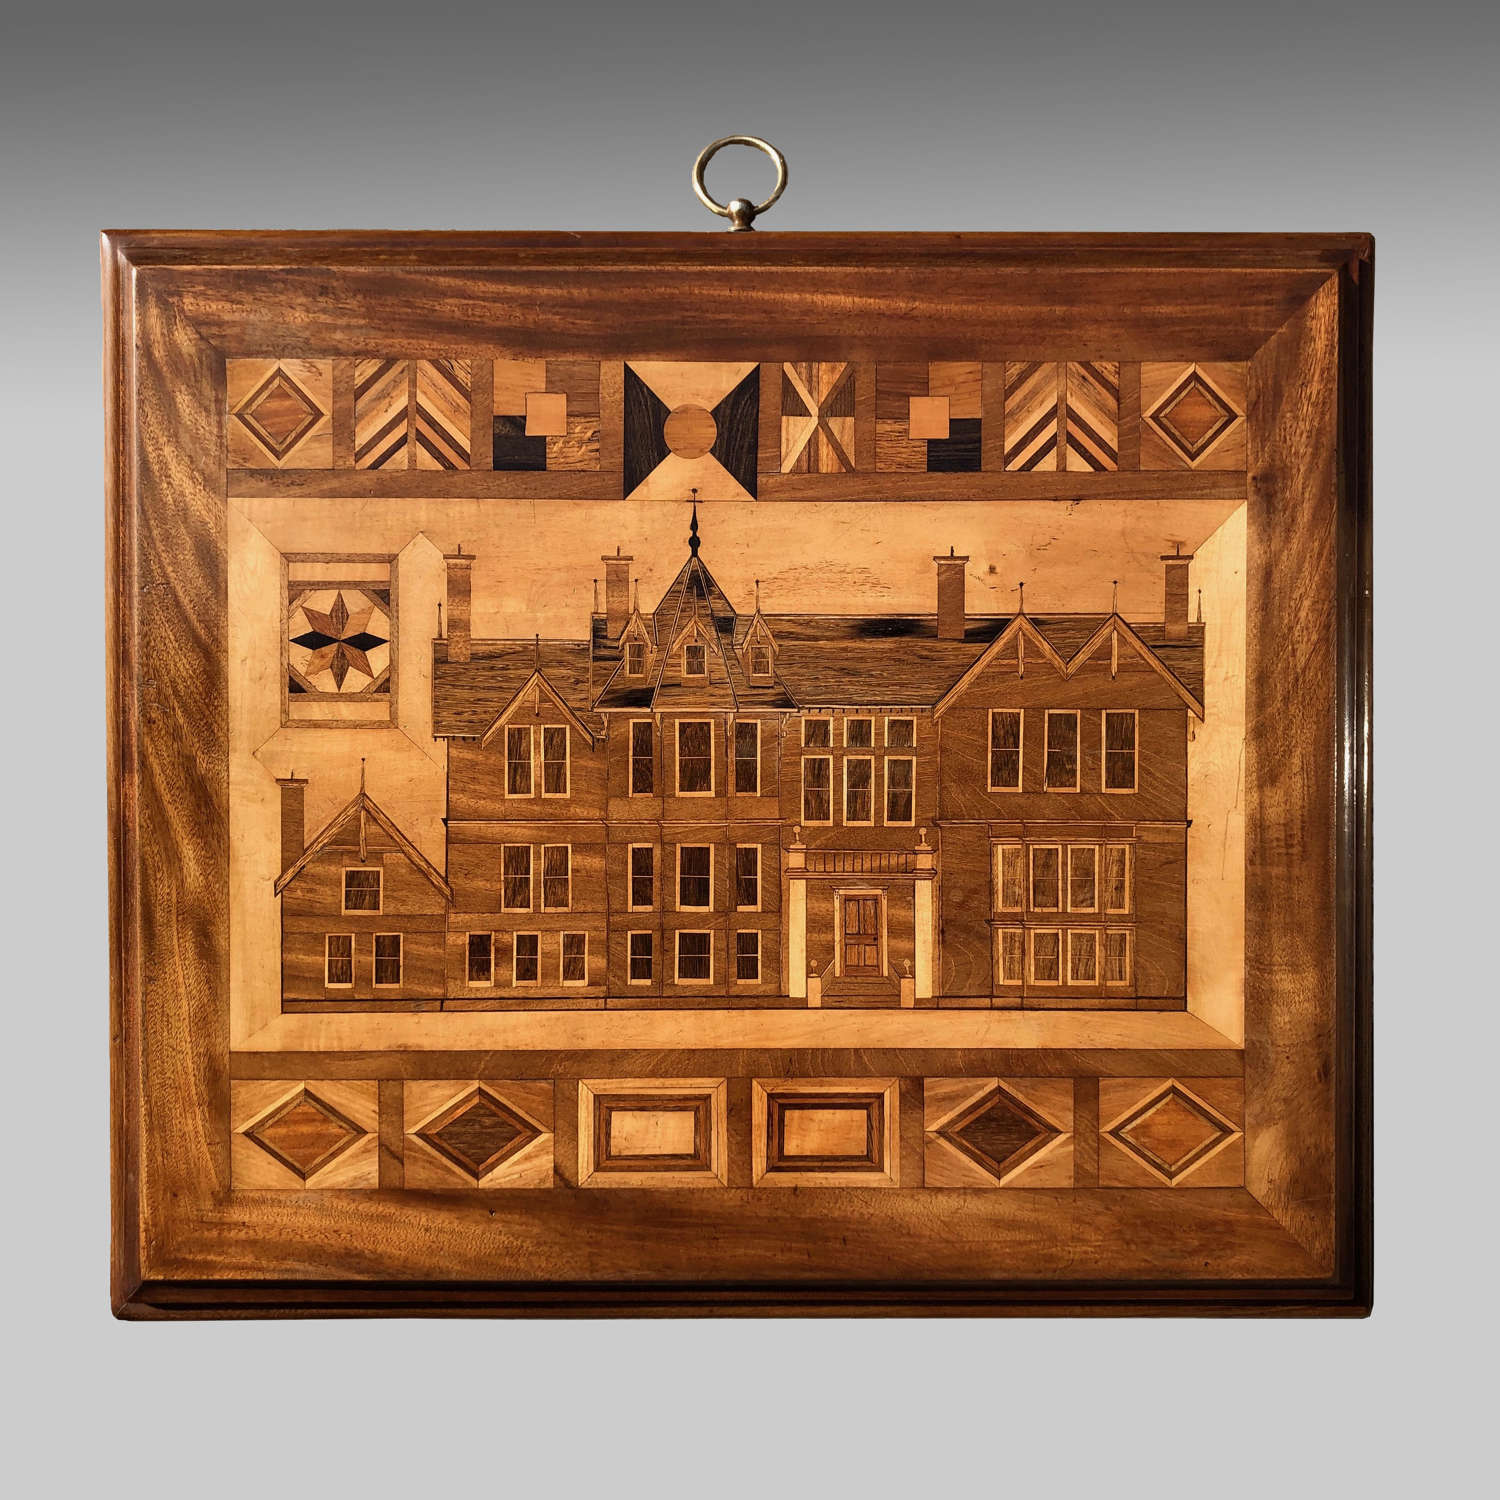 19th century Scottish parquetry picture of a house